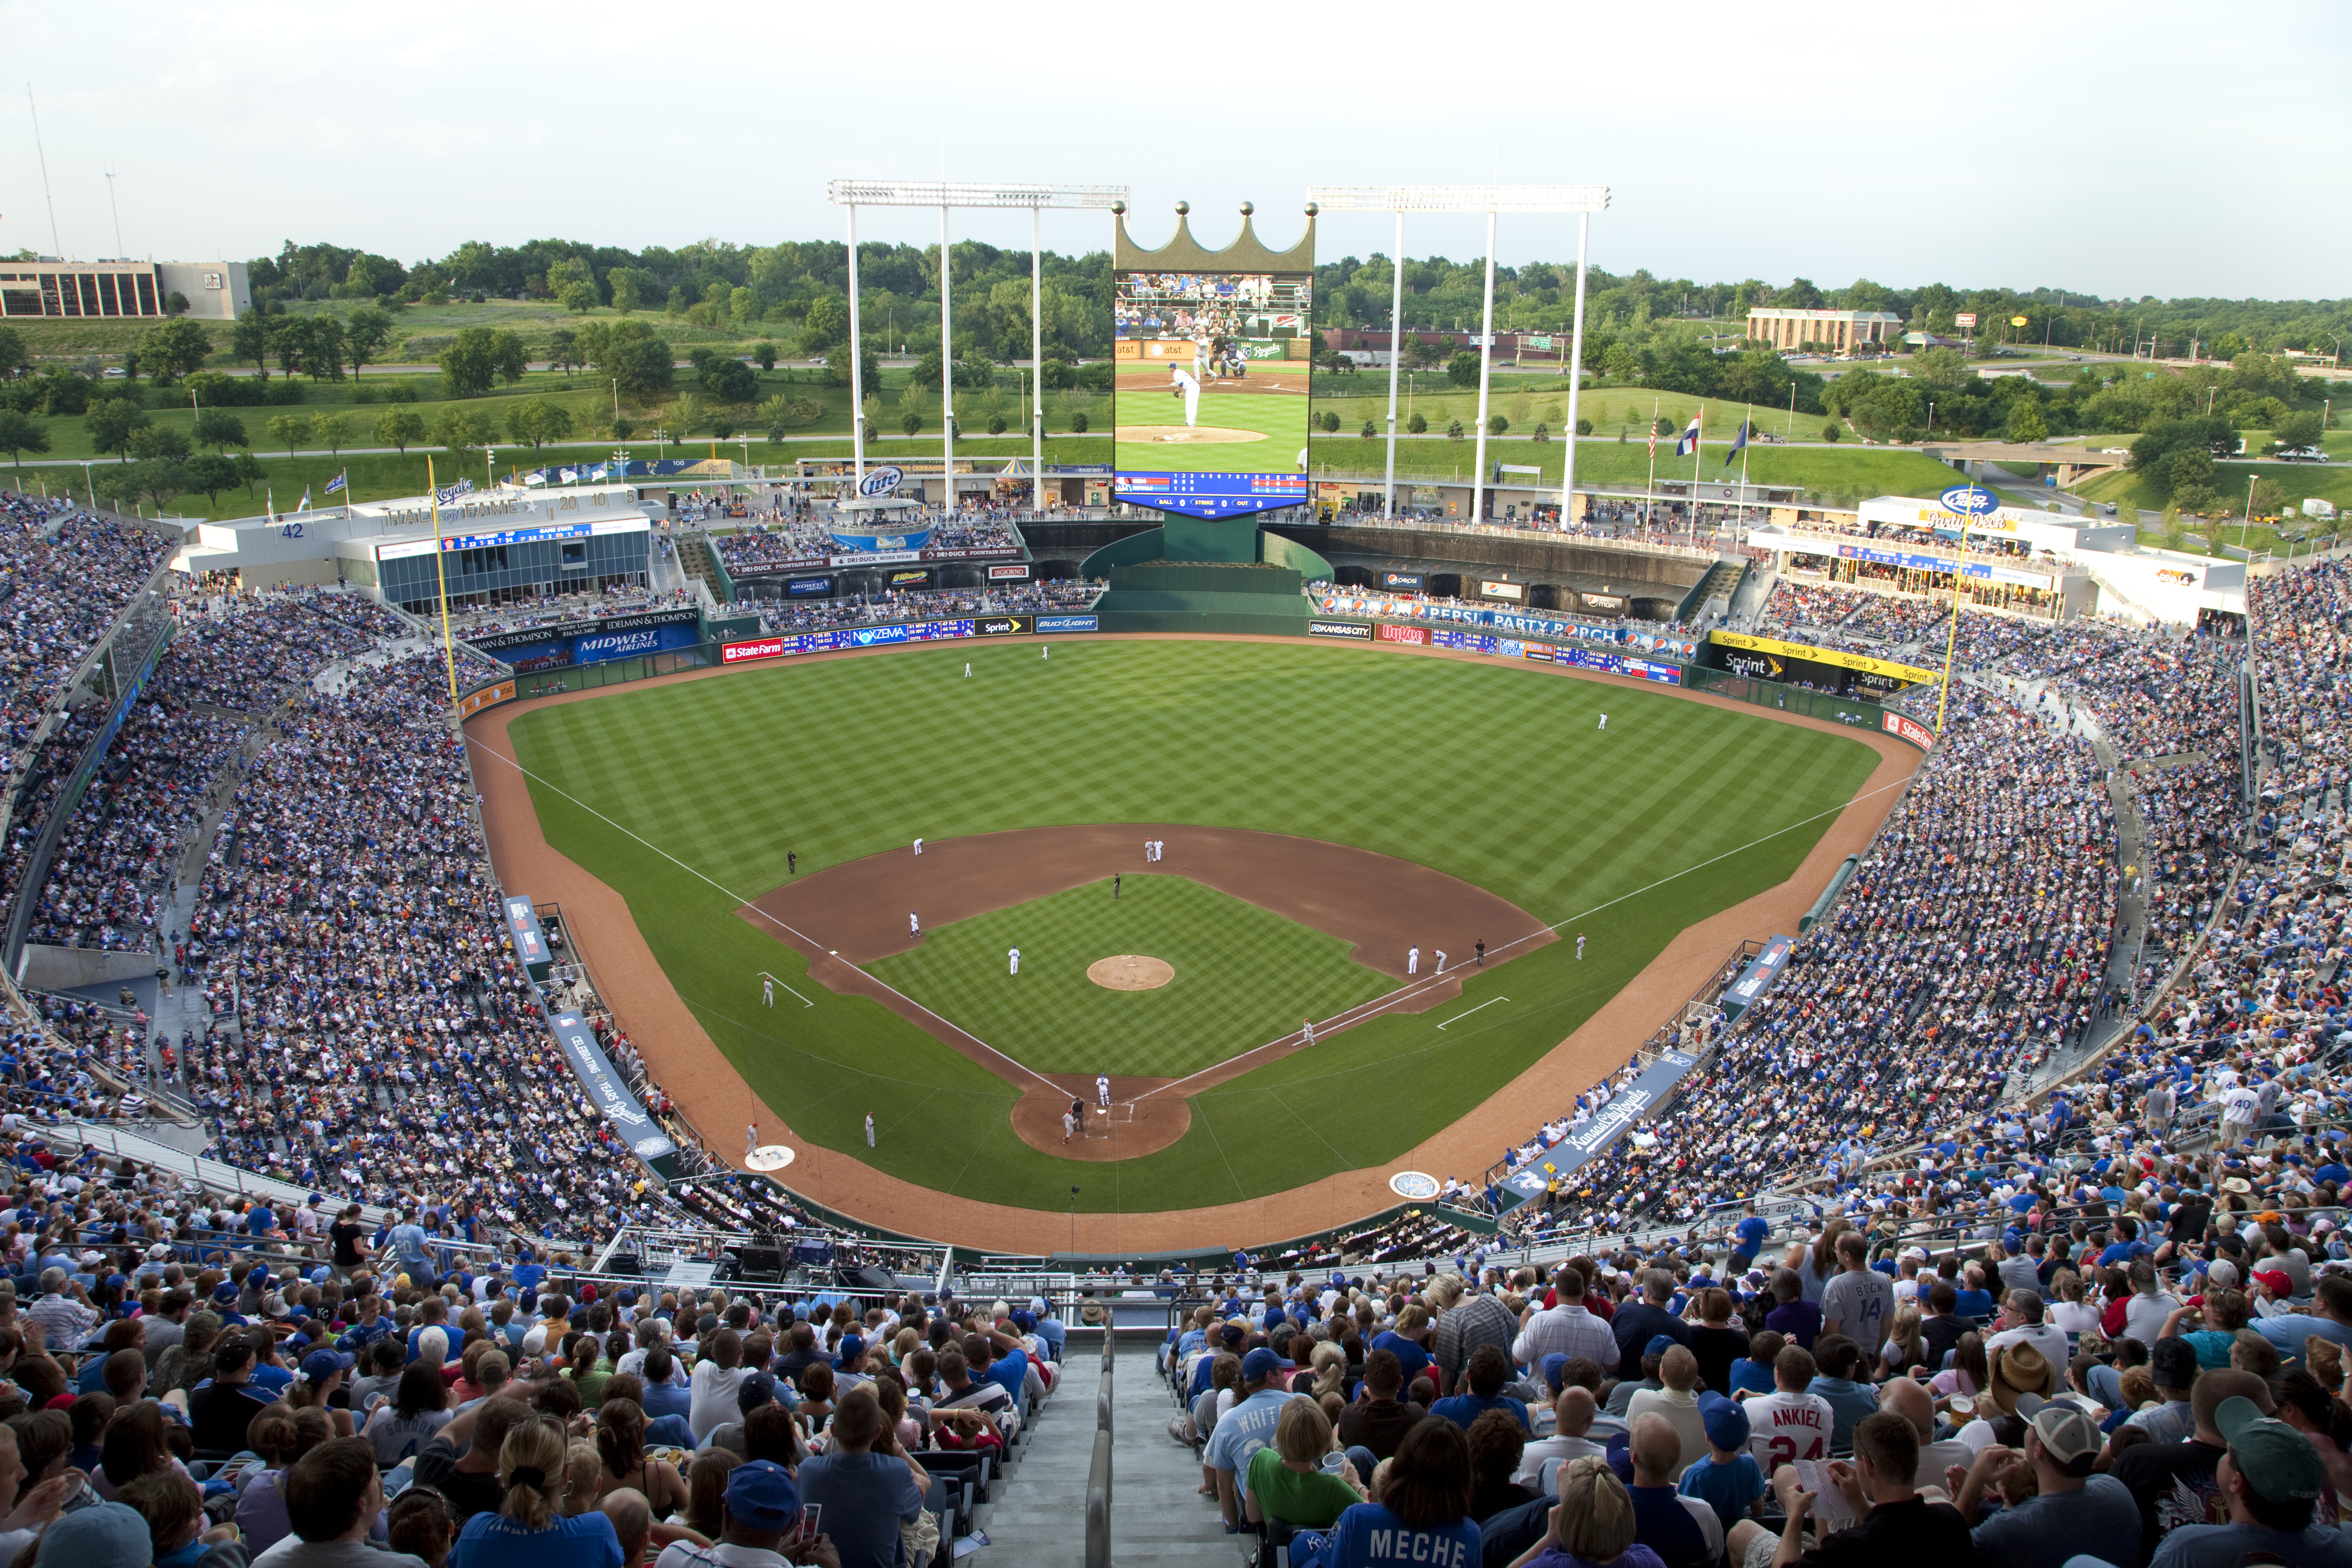 U S Cellular Field Seating Chart Directions and History Chicago White Sox ESPN BASEBALL SUMMER BALL Pinterest